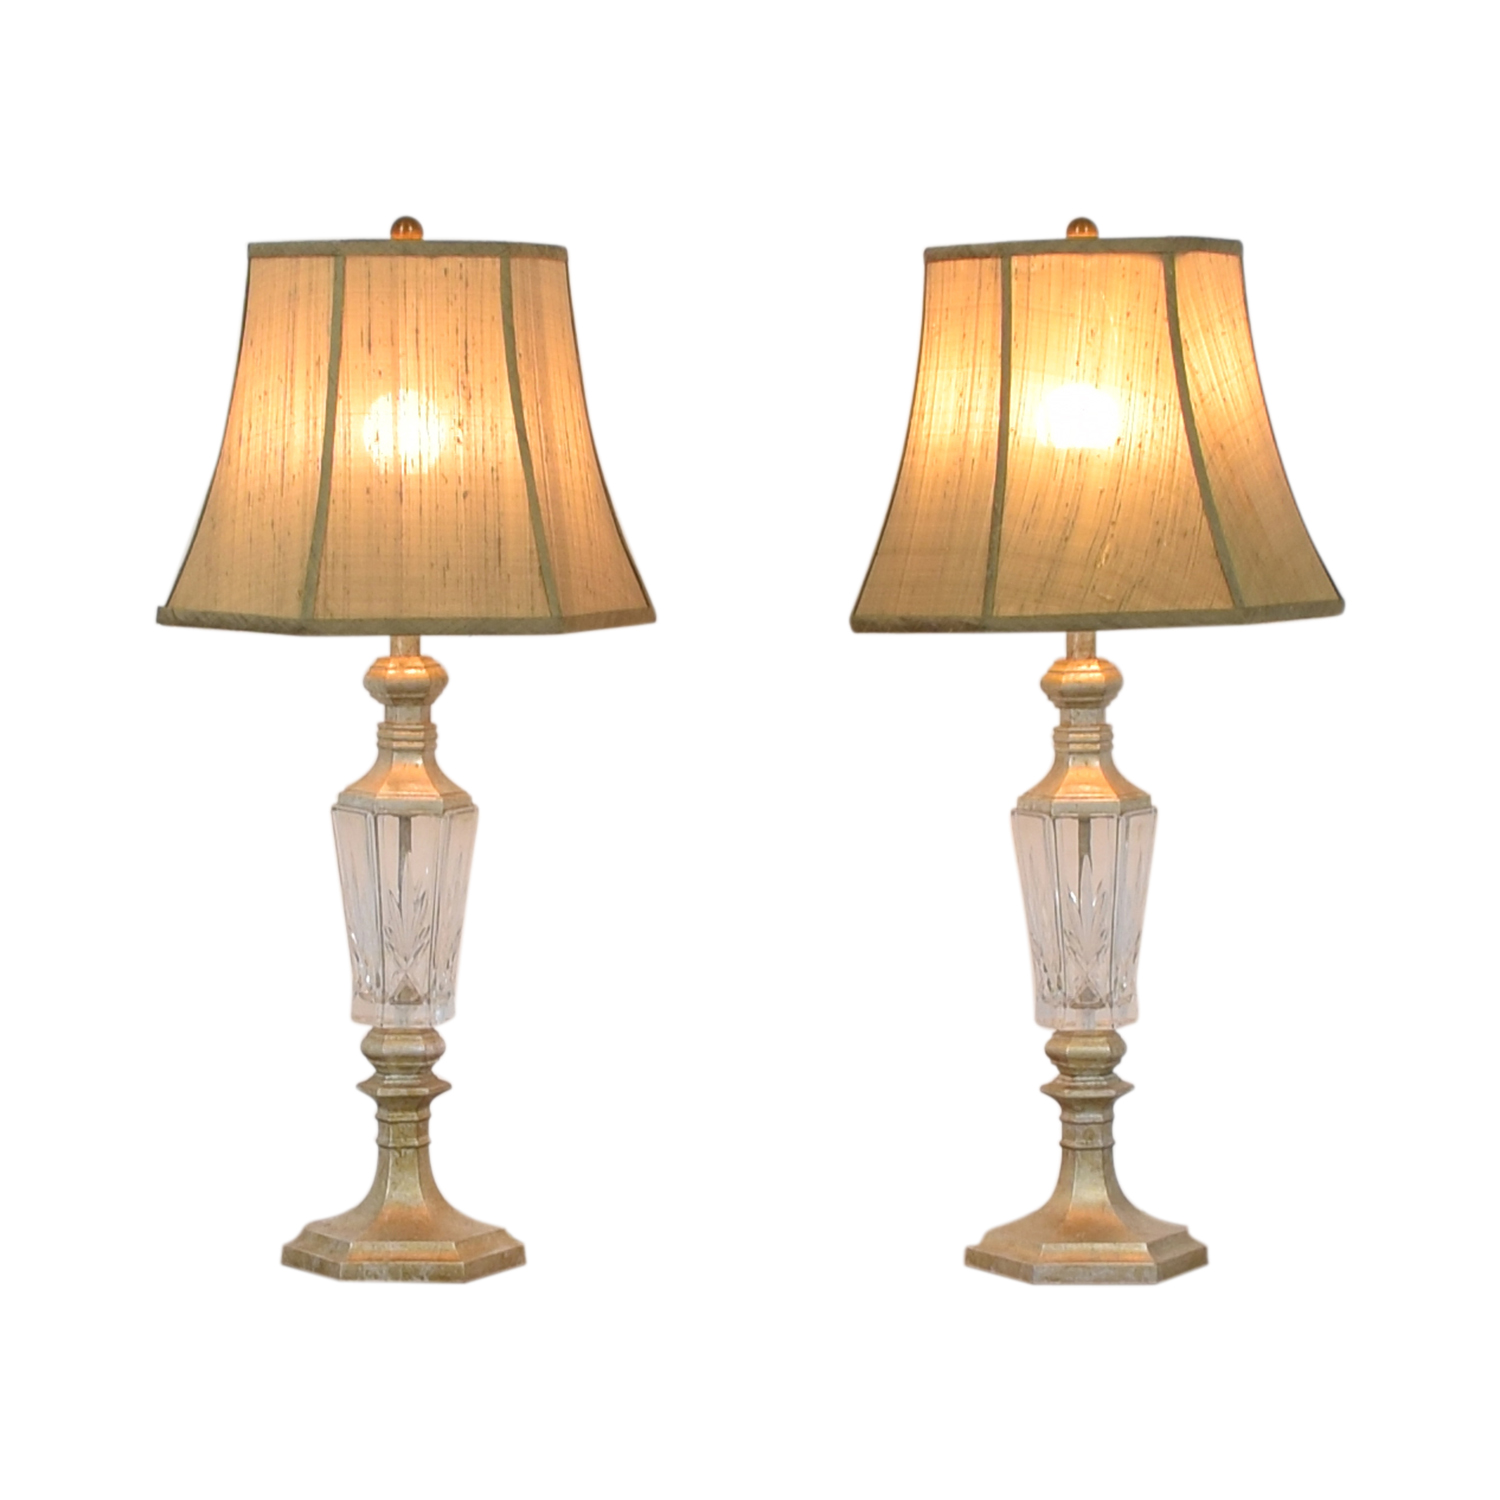 Distressed and Glass Accent Table Lamps second hand